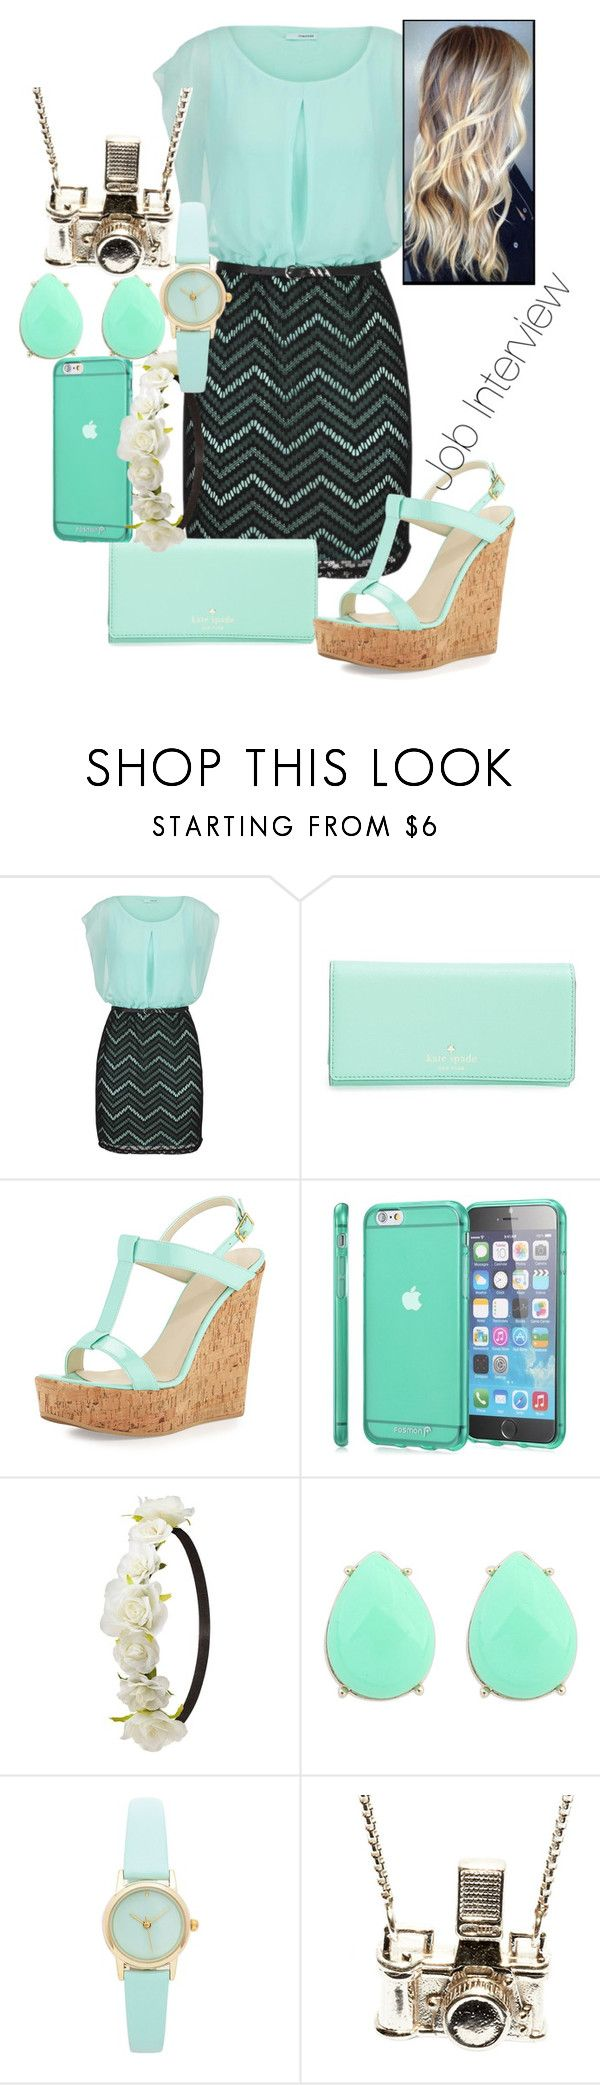 """Job Interview"" by samirogers1104 ❤ liked on Polyvore featuring maurices, Kate Spade, Dee Keller, Charlotte Russe and Kiel Mead Studio"